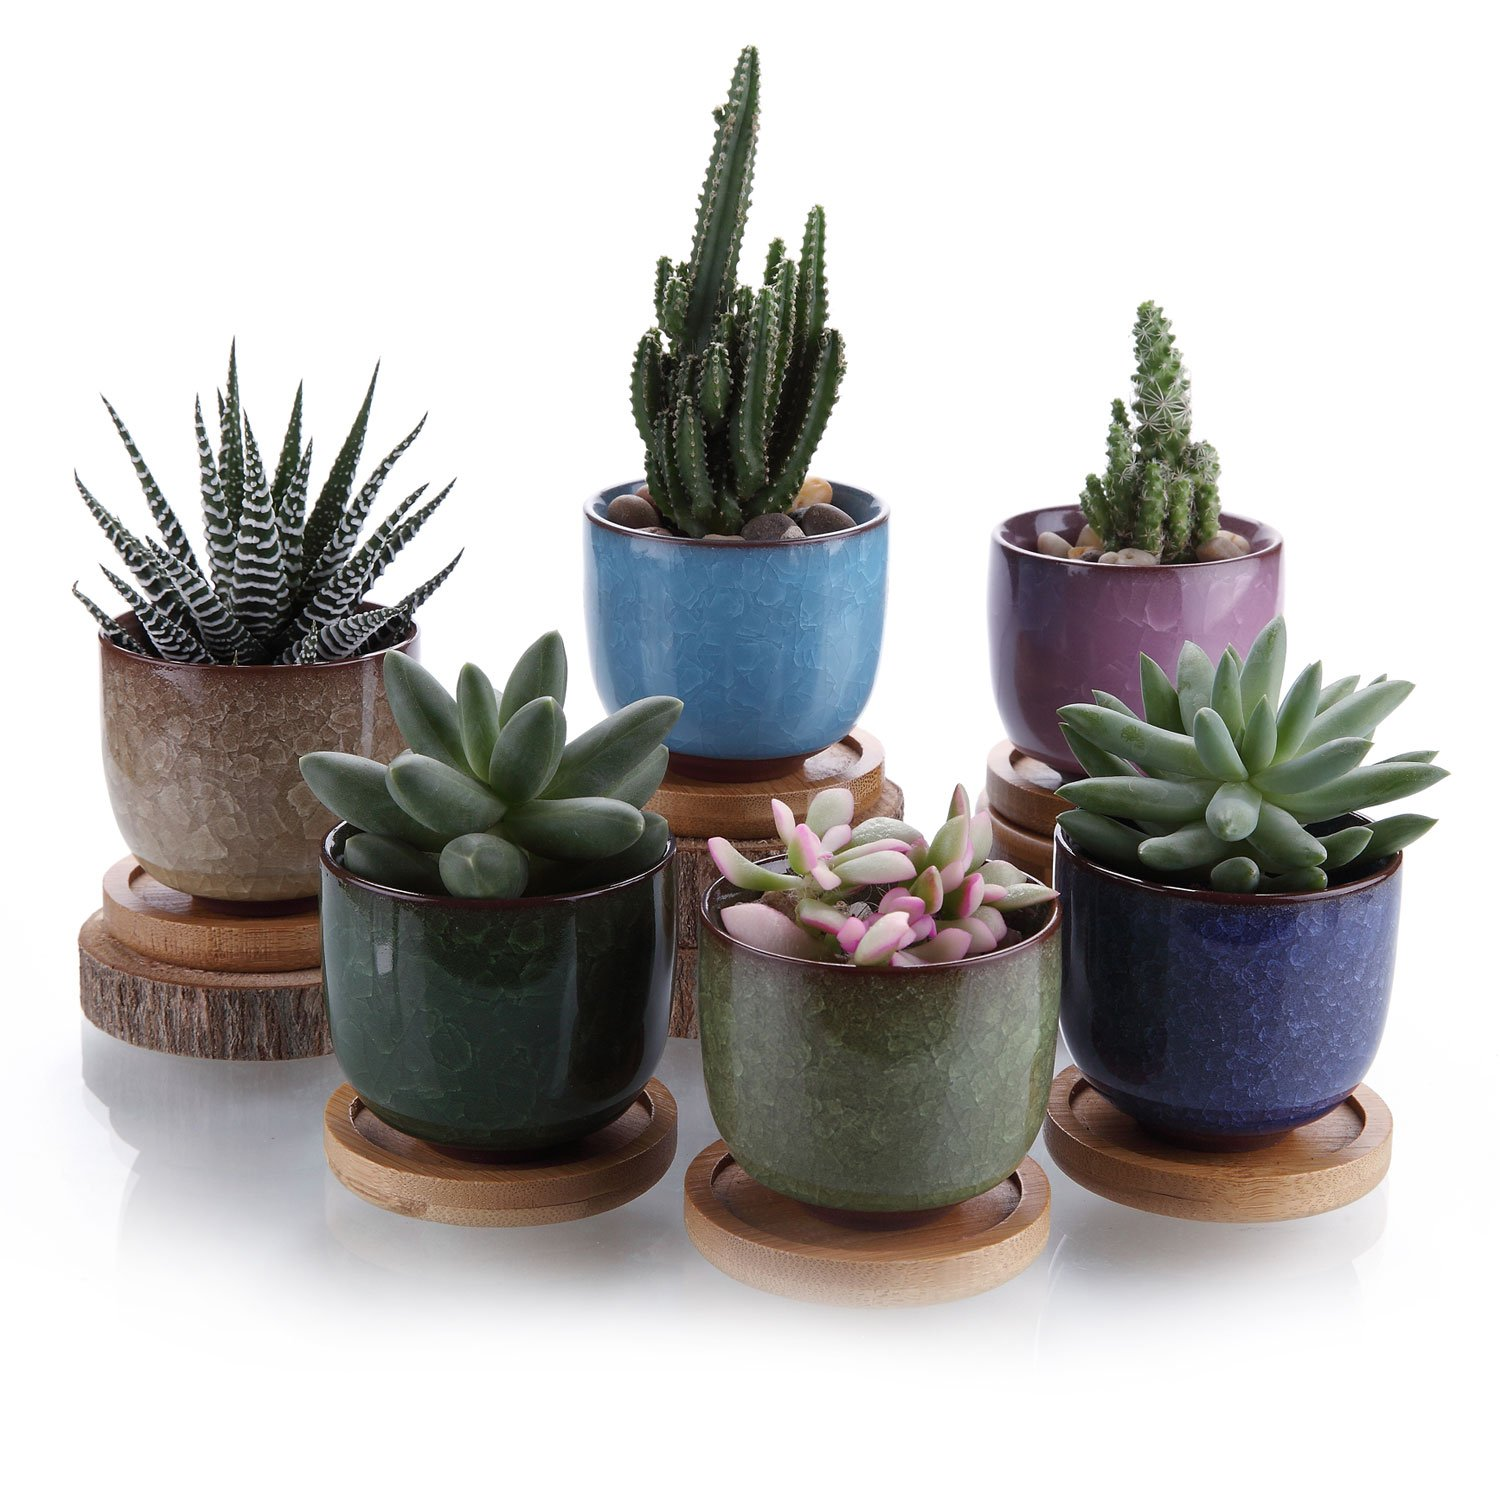 T4U 2.5 Inch Ceramic Ice Crack Zisha Raised Serial Sucuulent Plant Pot/Cactus Plant Pot Flower Pot/Container/Planter with Bamboo Trays Full colors Package 1 Pack of 6 by T4U